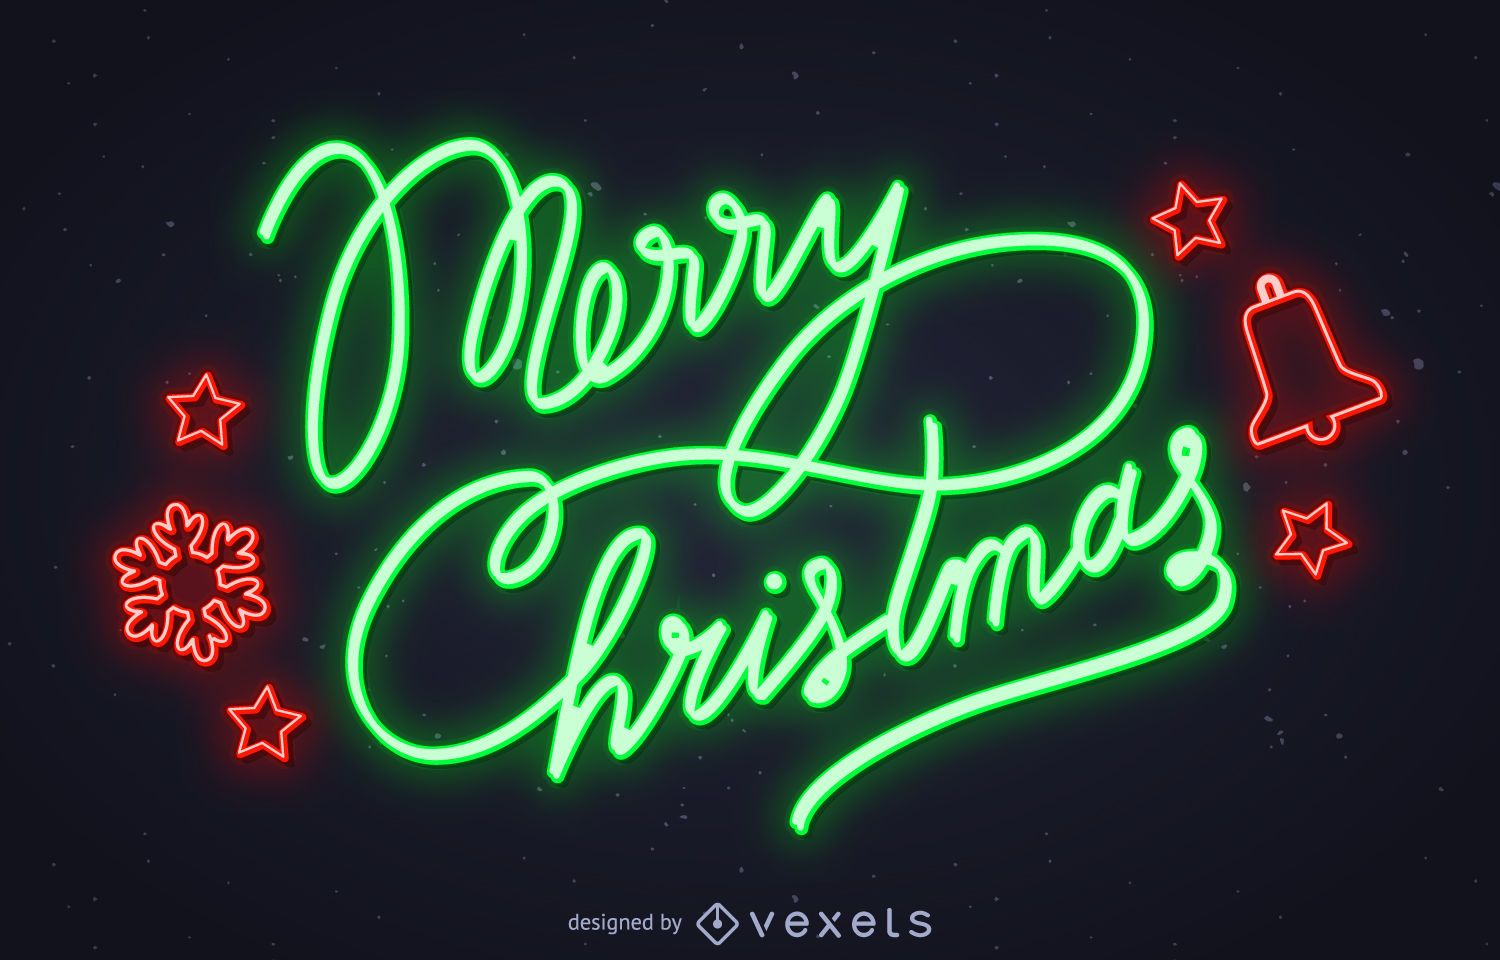 neon merry christmas sign vector download welcome to fabulous las vegas sign vector free welcome to las vegas sign vector